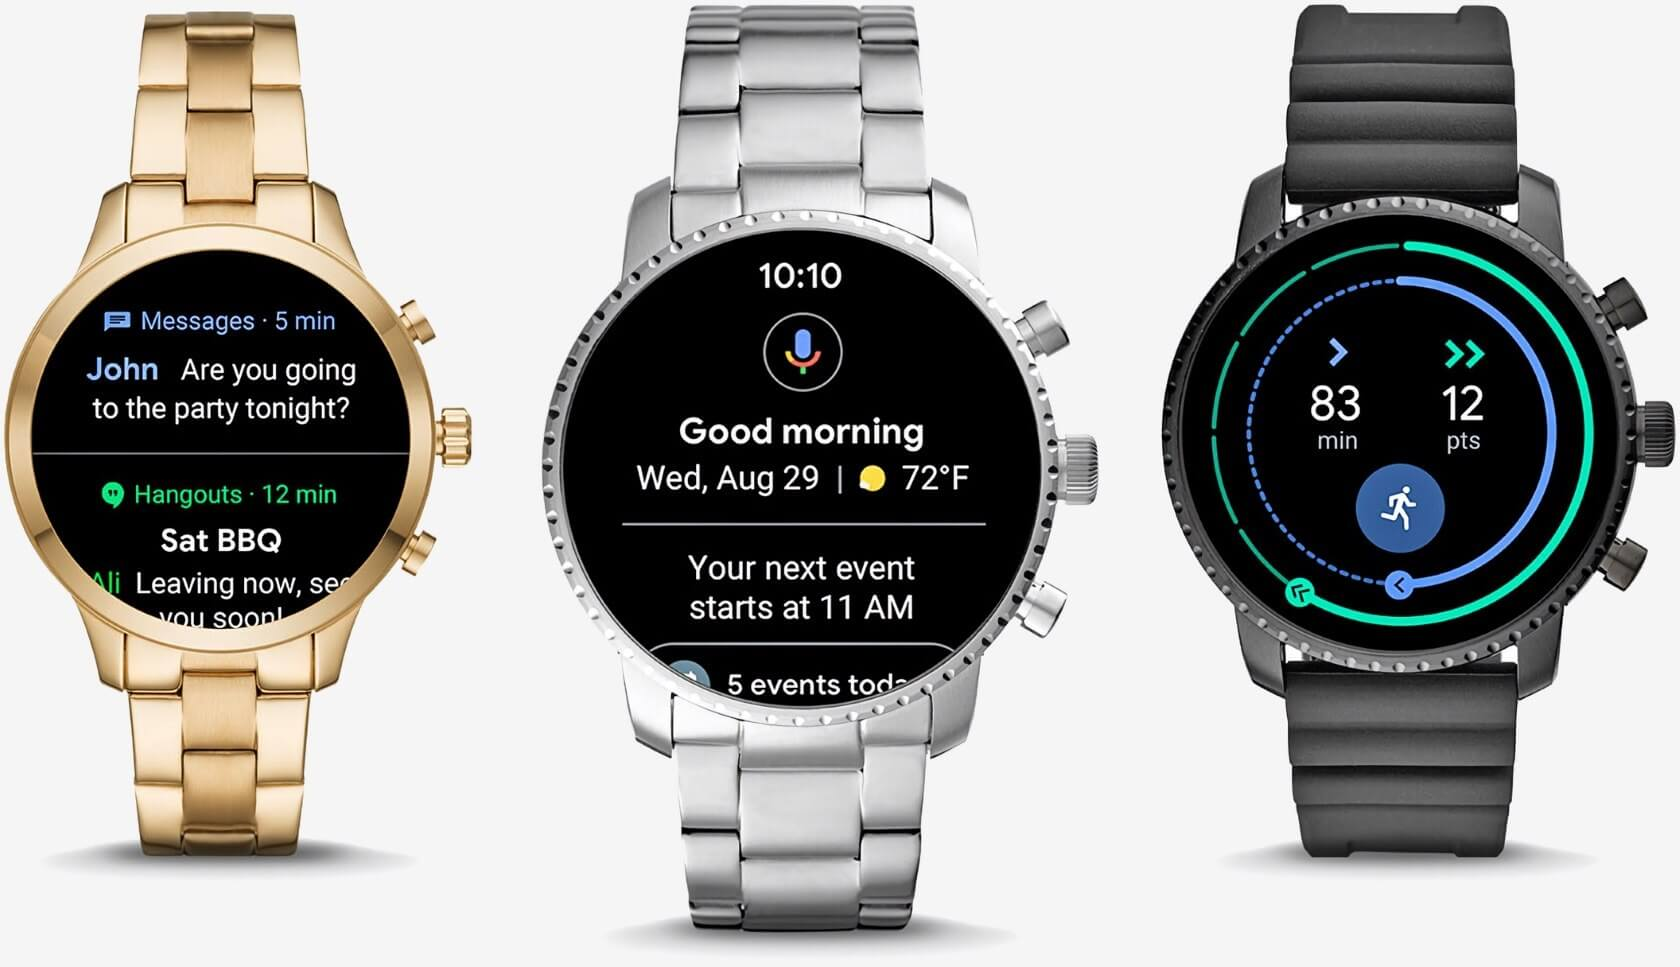 Fossil to sell smartwatch technology worth $40 million to Google